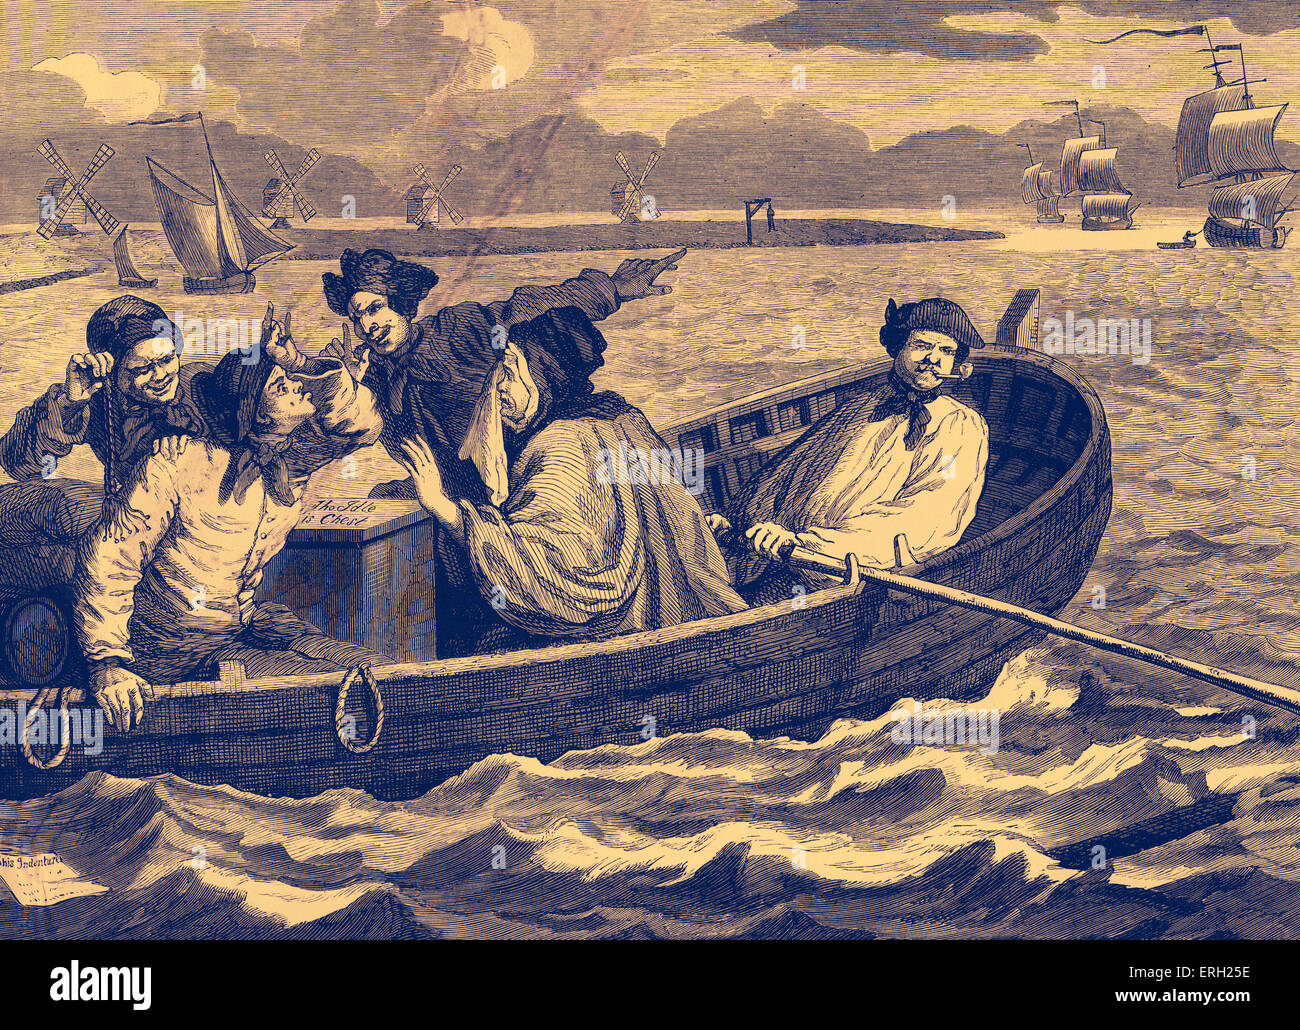 Industry and Idleness - The Idle Apprentice Sent to Sea. Engraving by William Hogarth. Tom Idle at sea, having been - Stock Image